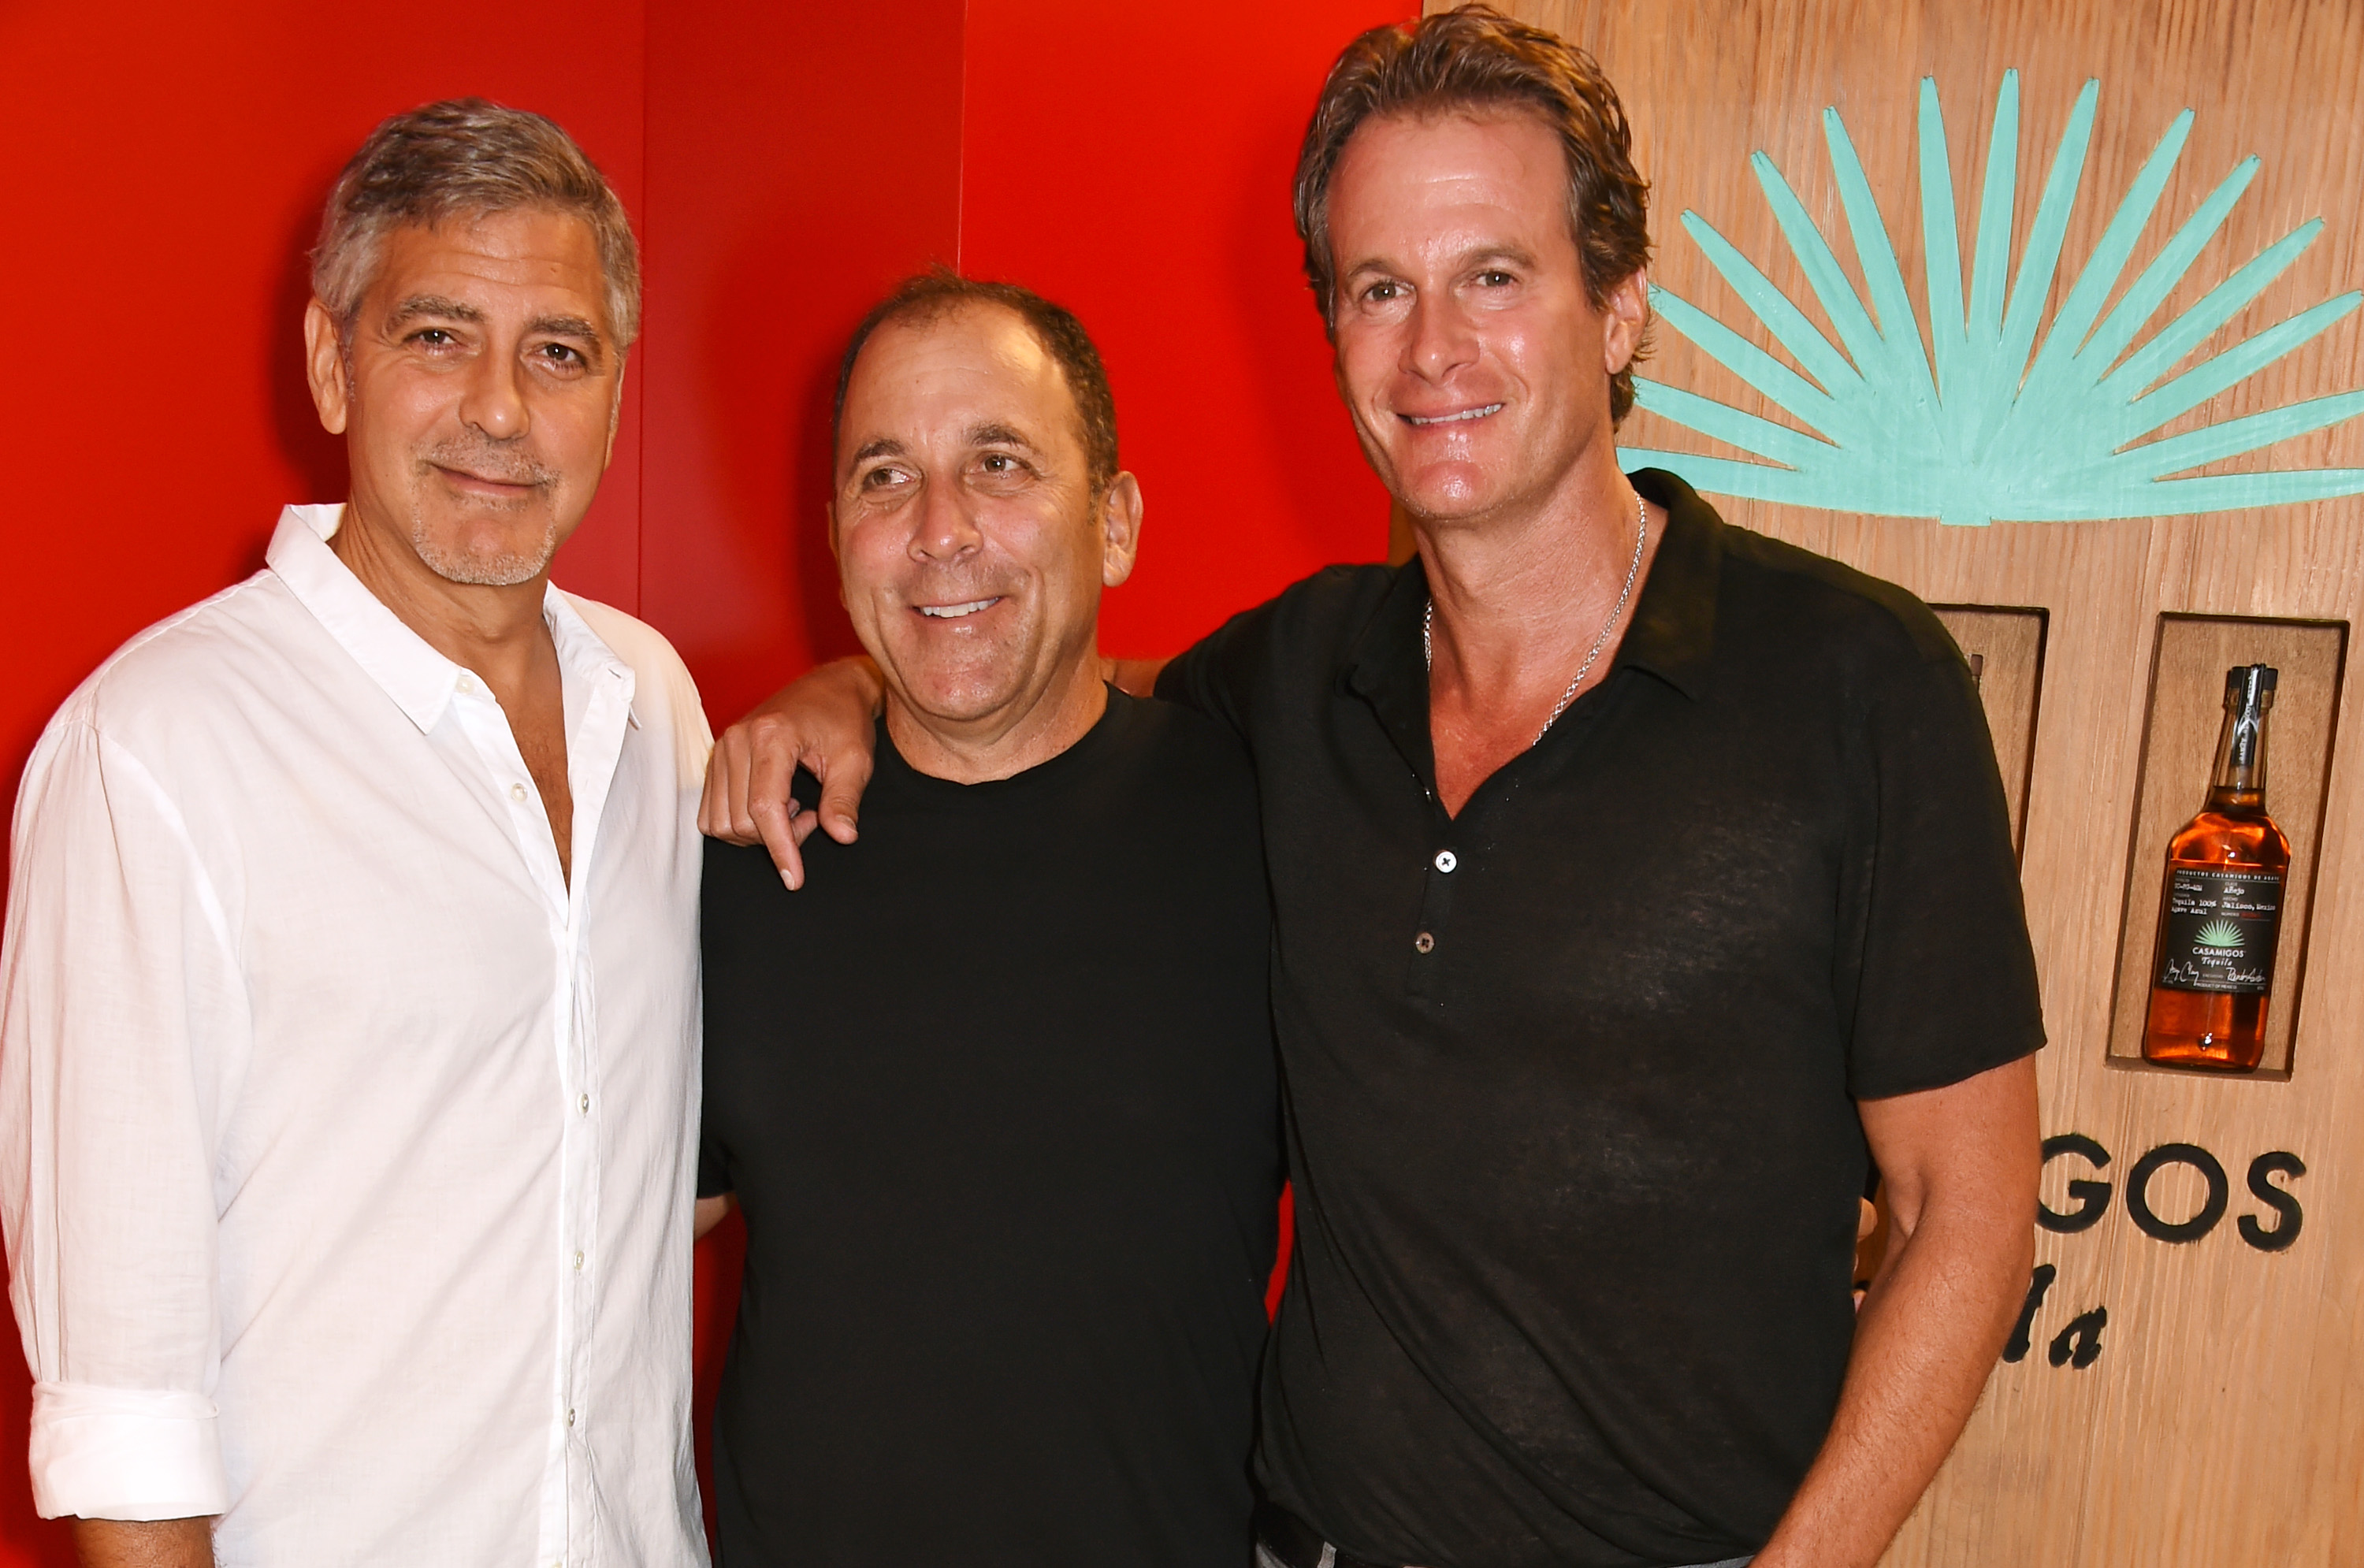 IBIZA, SPAIN - AUGUST 23: (L to R) Founders of Casamigos Tequila George Clooney, Mike Meldman and Rande Gerber attend as Casamigos founders Rande Gerber, George Clooney and Mike Meldman host the official launch of Casamigos Tequila in Ibiza and Spain at Ushuaia Ibiza Beach Hotel on August 23, 2015 in Ibiza, Spain. Pic Credit: Dave Benett